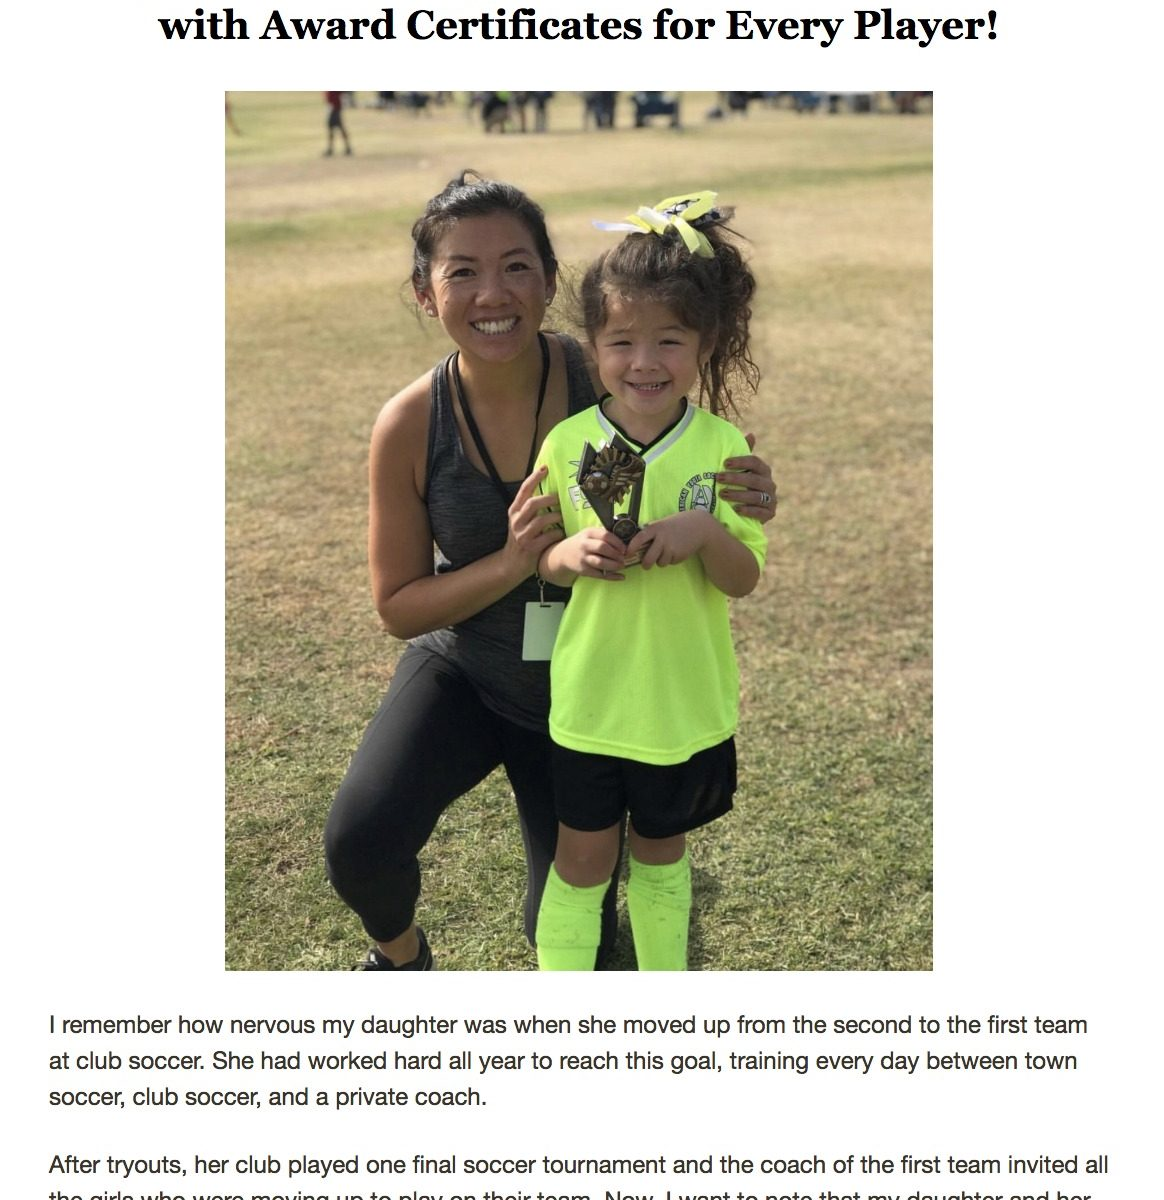 We were featured in AYSO 90 Second Soccer Parent Newsletter